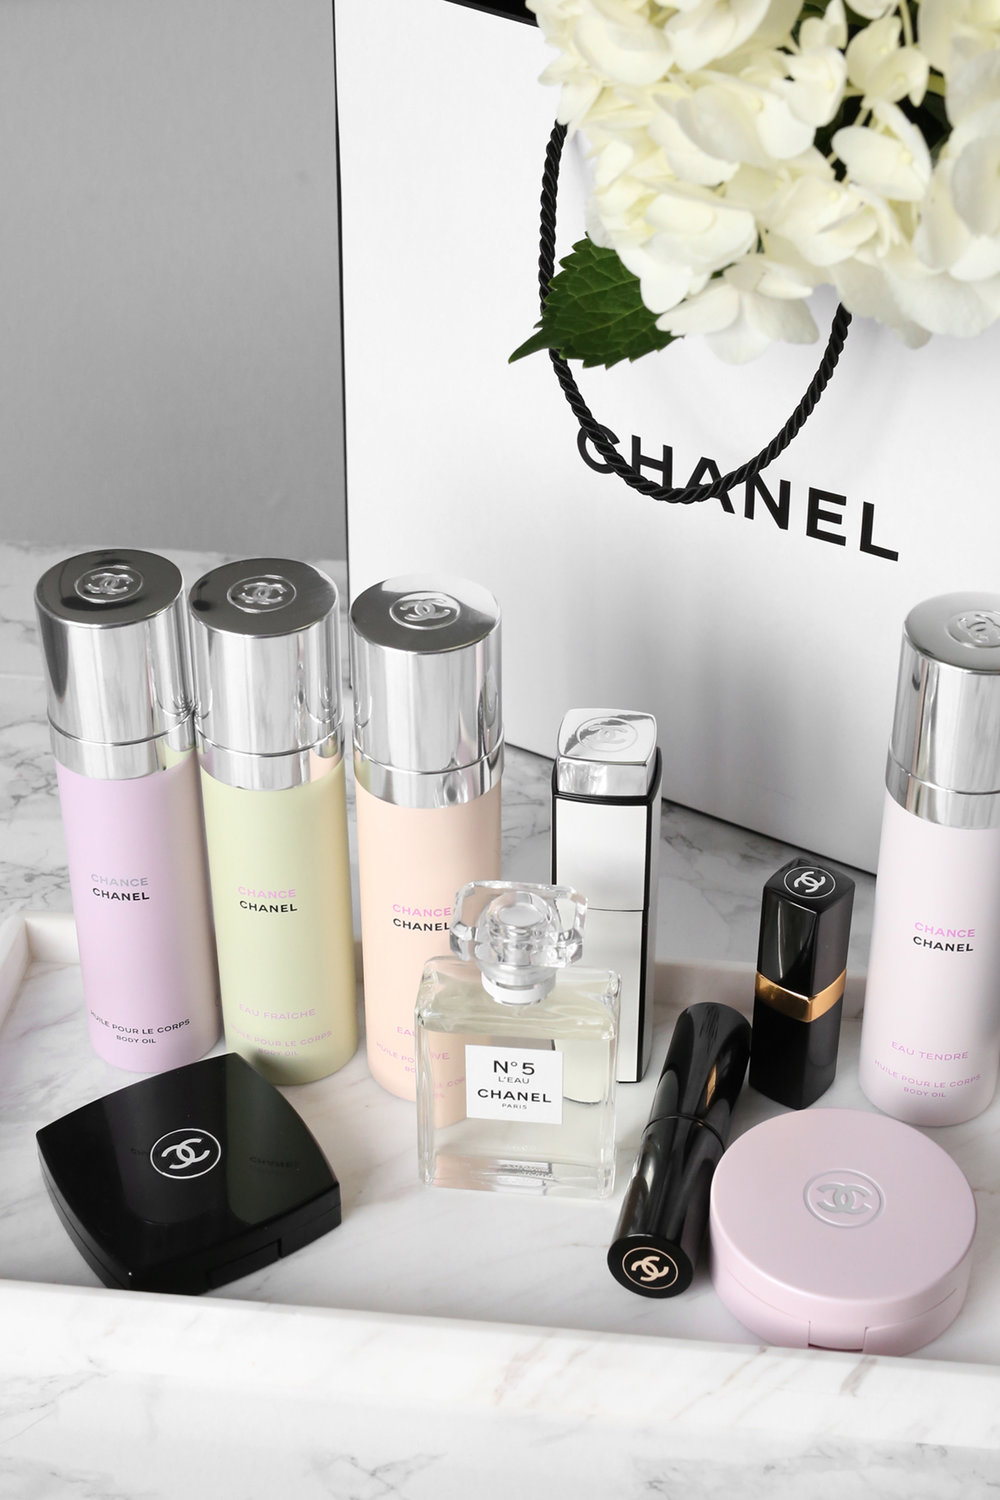 CHANEL Chance Body Oils and Fragrance Cushion Compact - woahstyle.com_7811.jpg